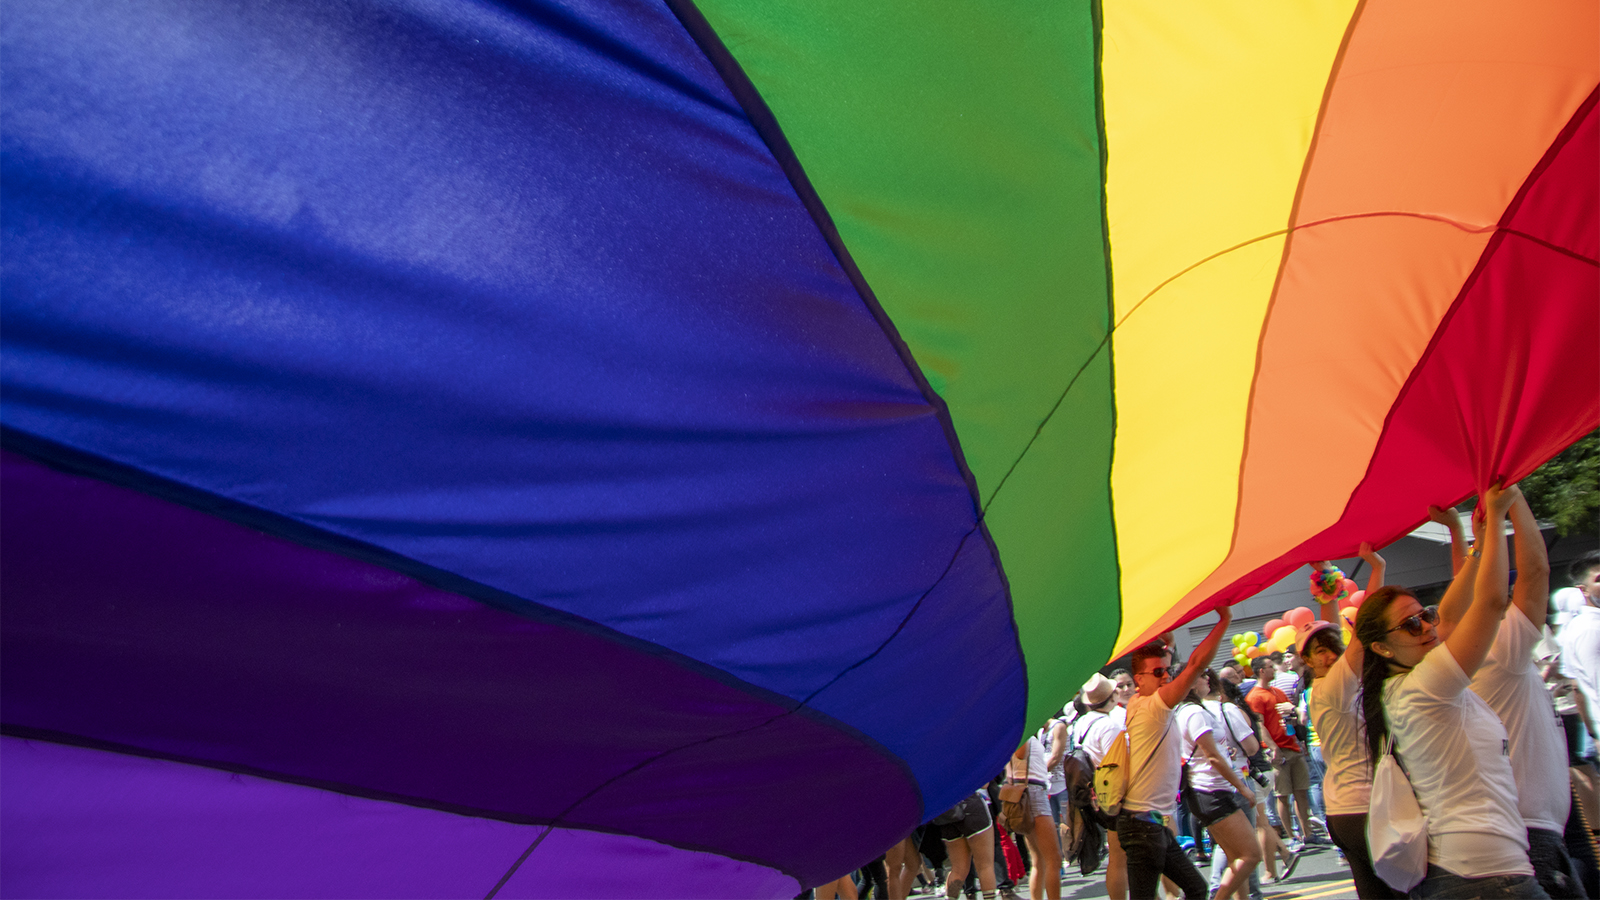 50 Years of LGBTQ+ Pride, Parades and Progress